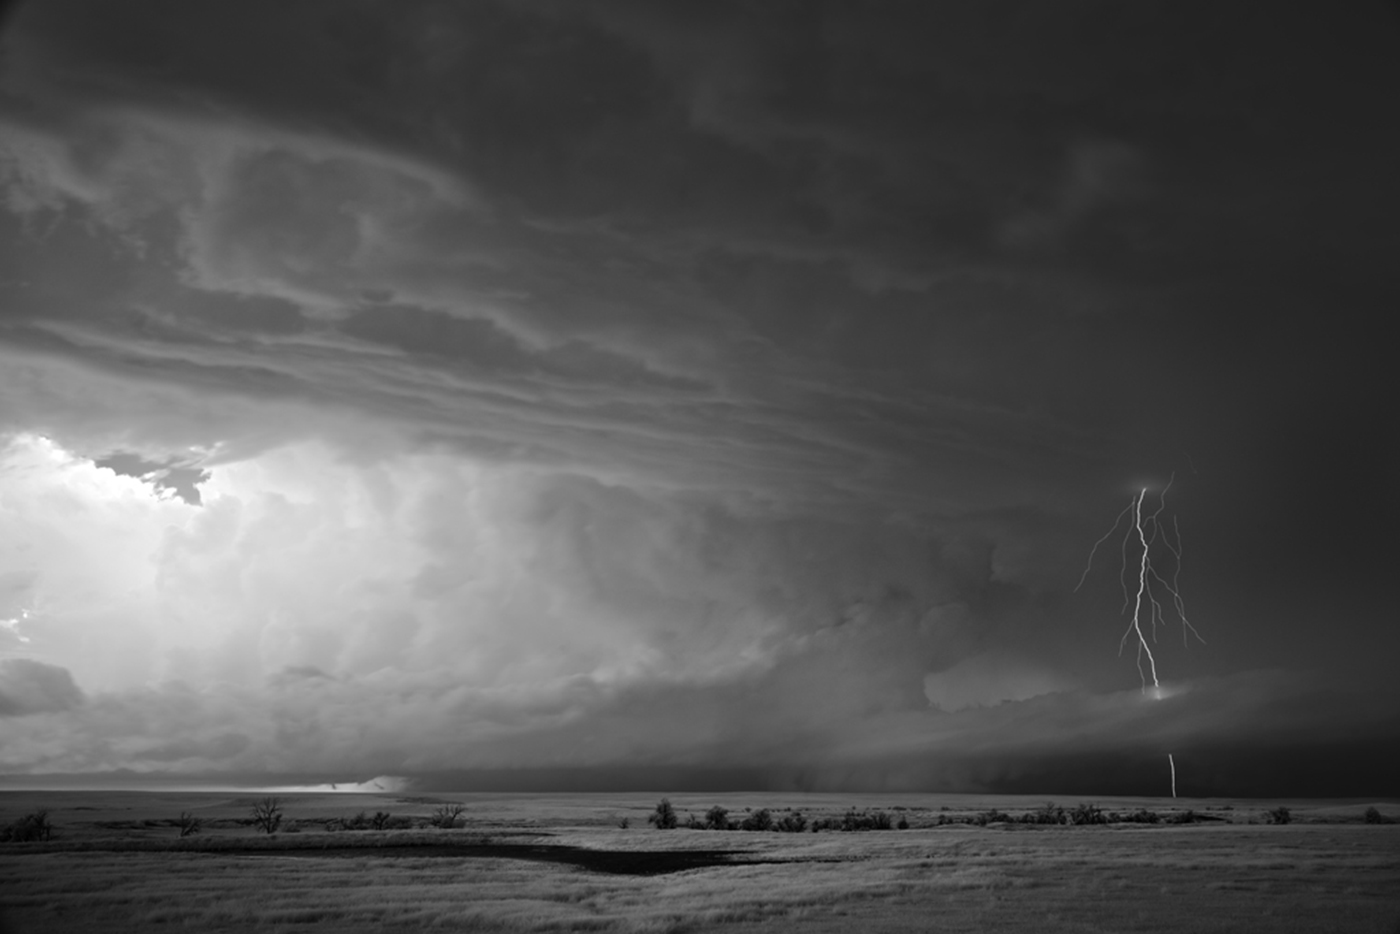 Mitch Dobrowner_Storm and Last Light.jpg